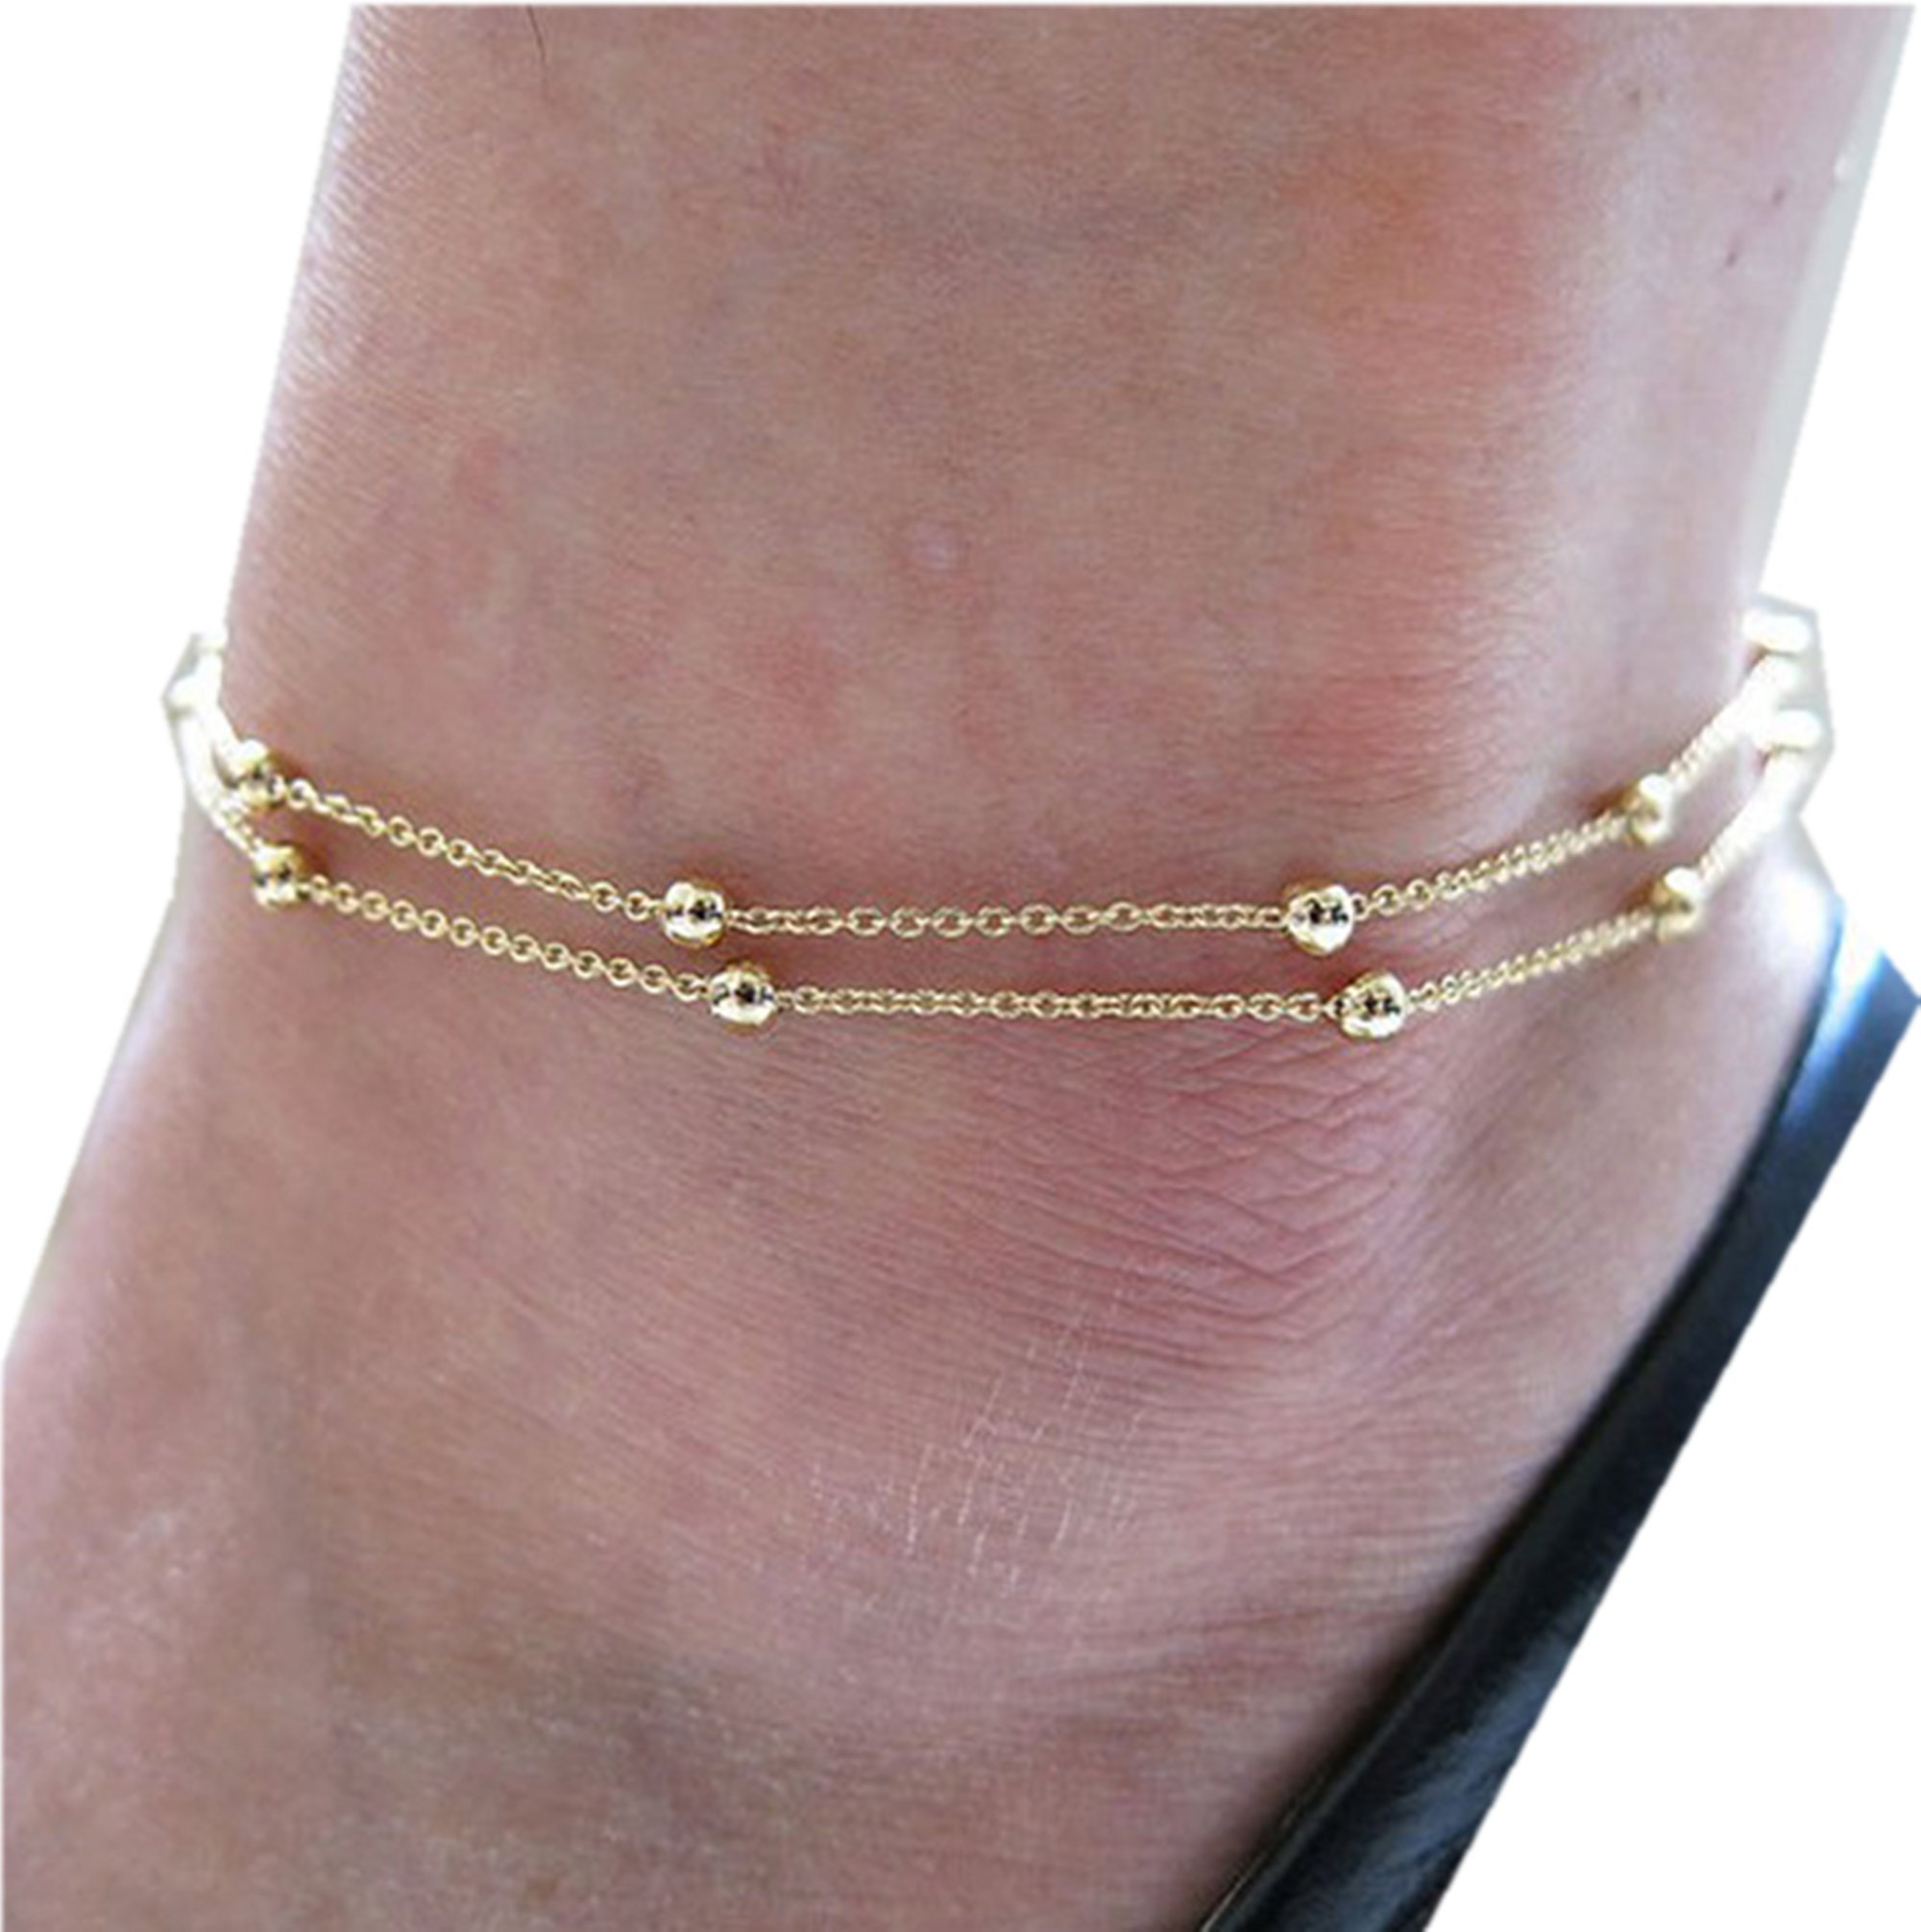 watch bracelets bracelet easy simple anklet youtube ankle macrame